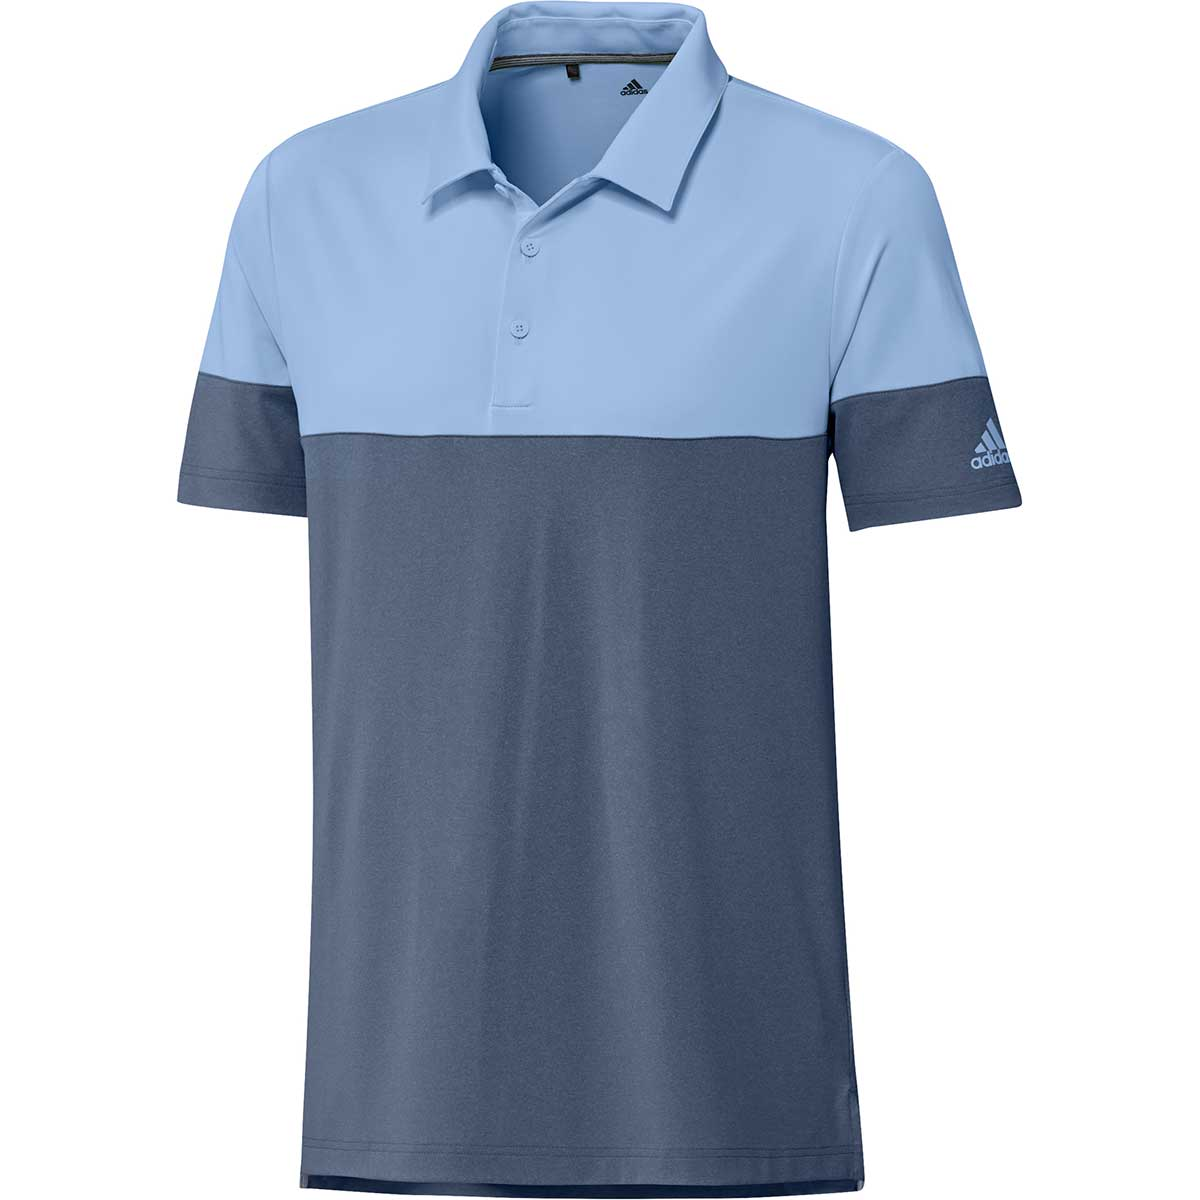 Adidas Men's Ultimate365 Heathered Blocked Tech Ink Polo